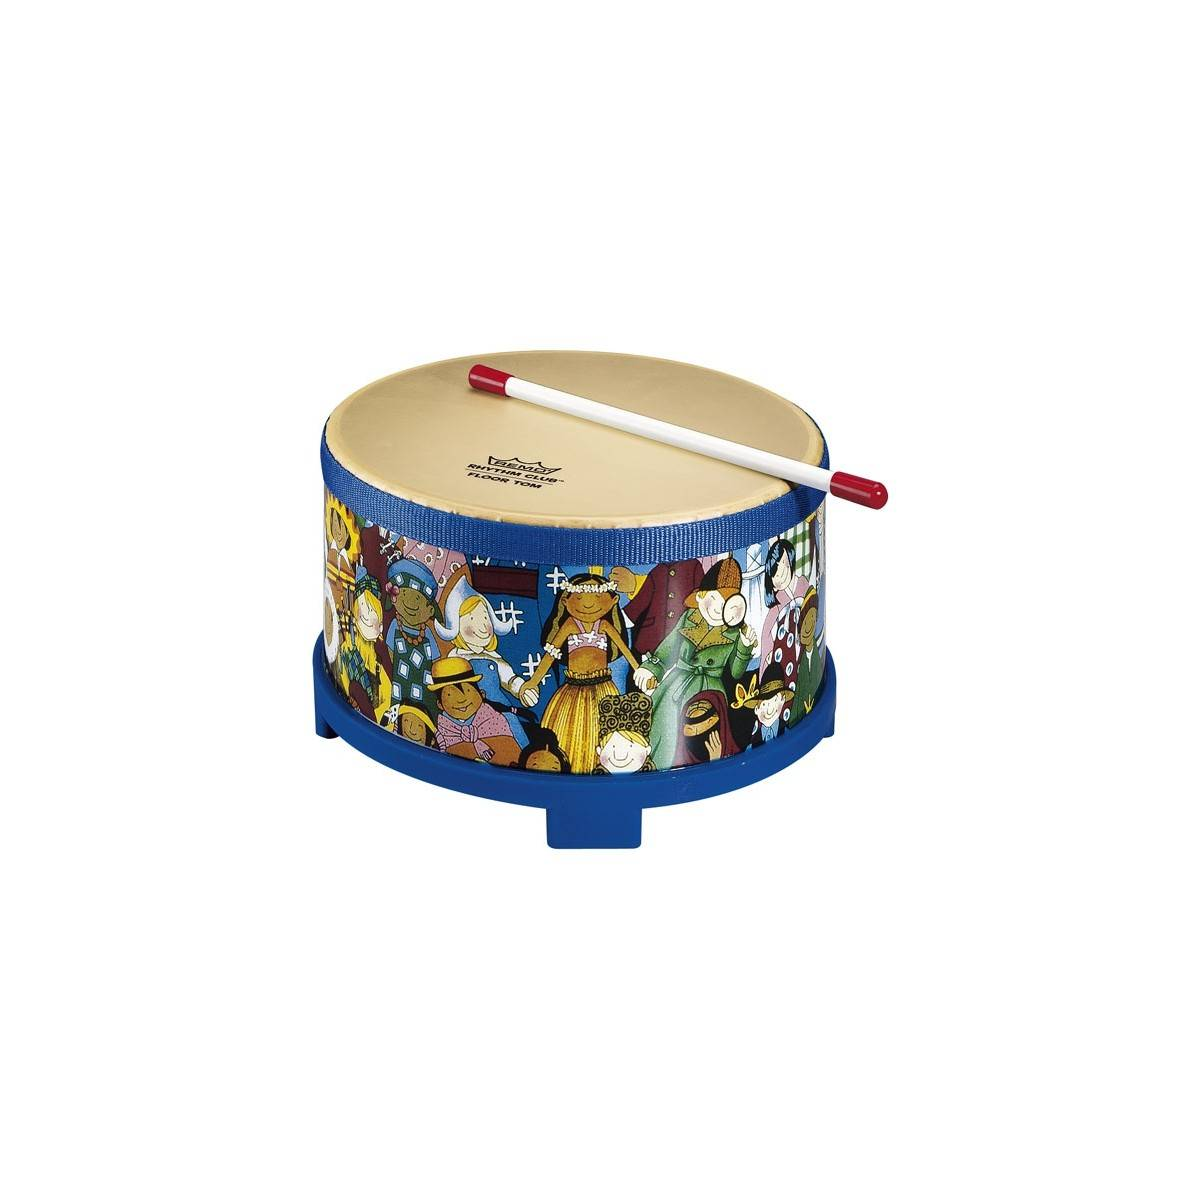 Floor Tom enfant Rythm Club